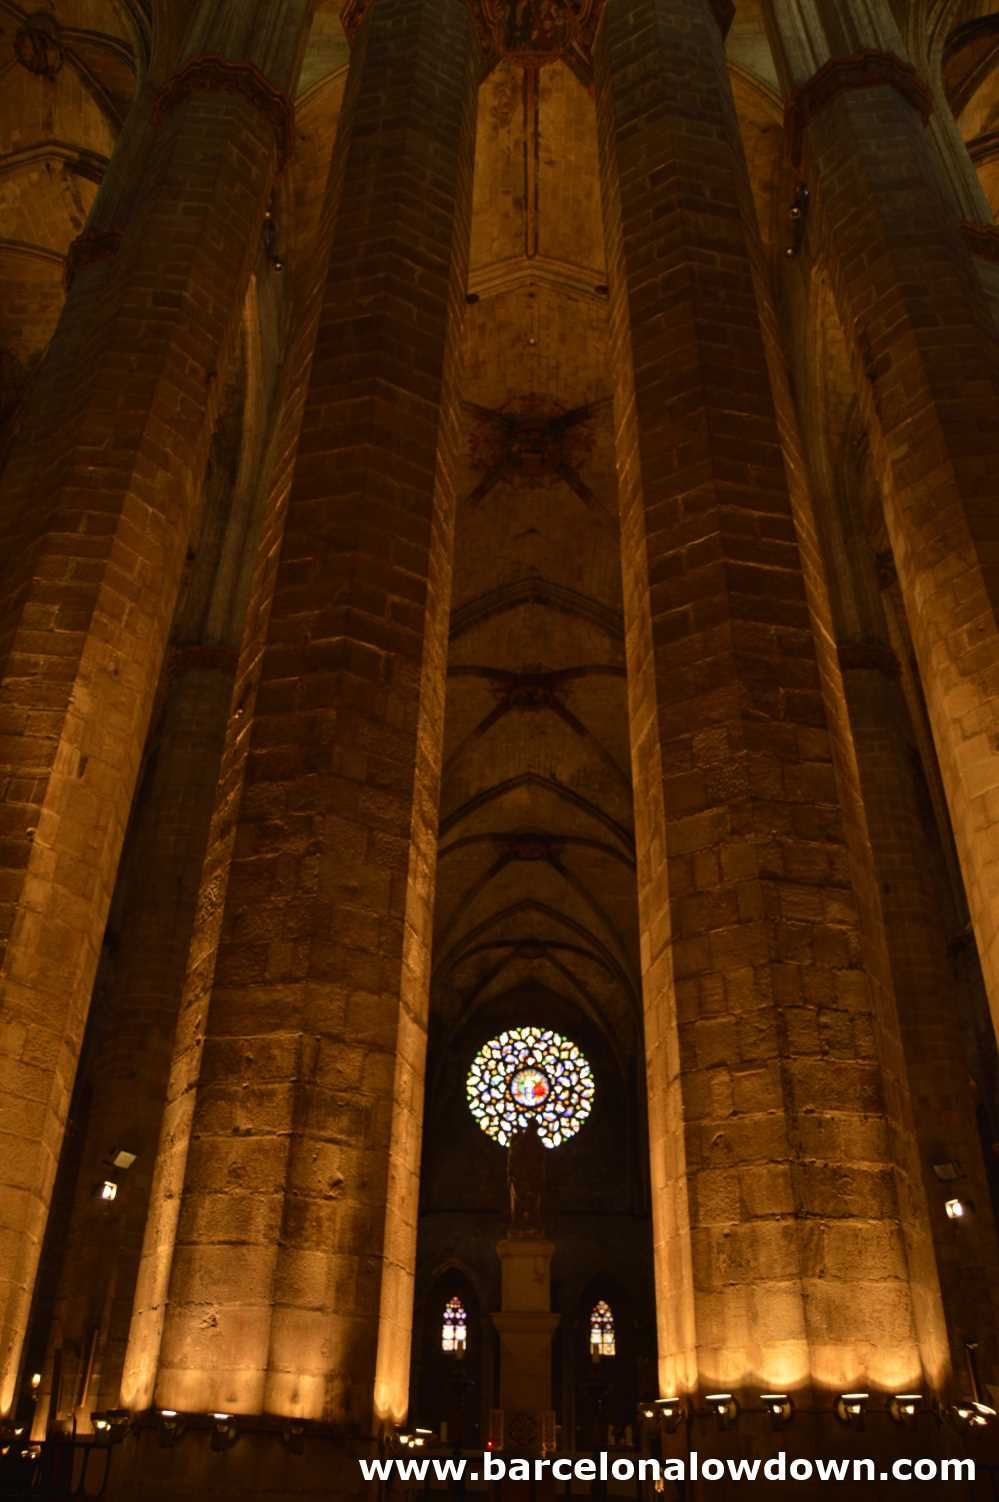 Tall columns in the Santa Maria del Mar Cathedral which is the largest medieval nave and prime example of Catalan gothic